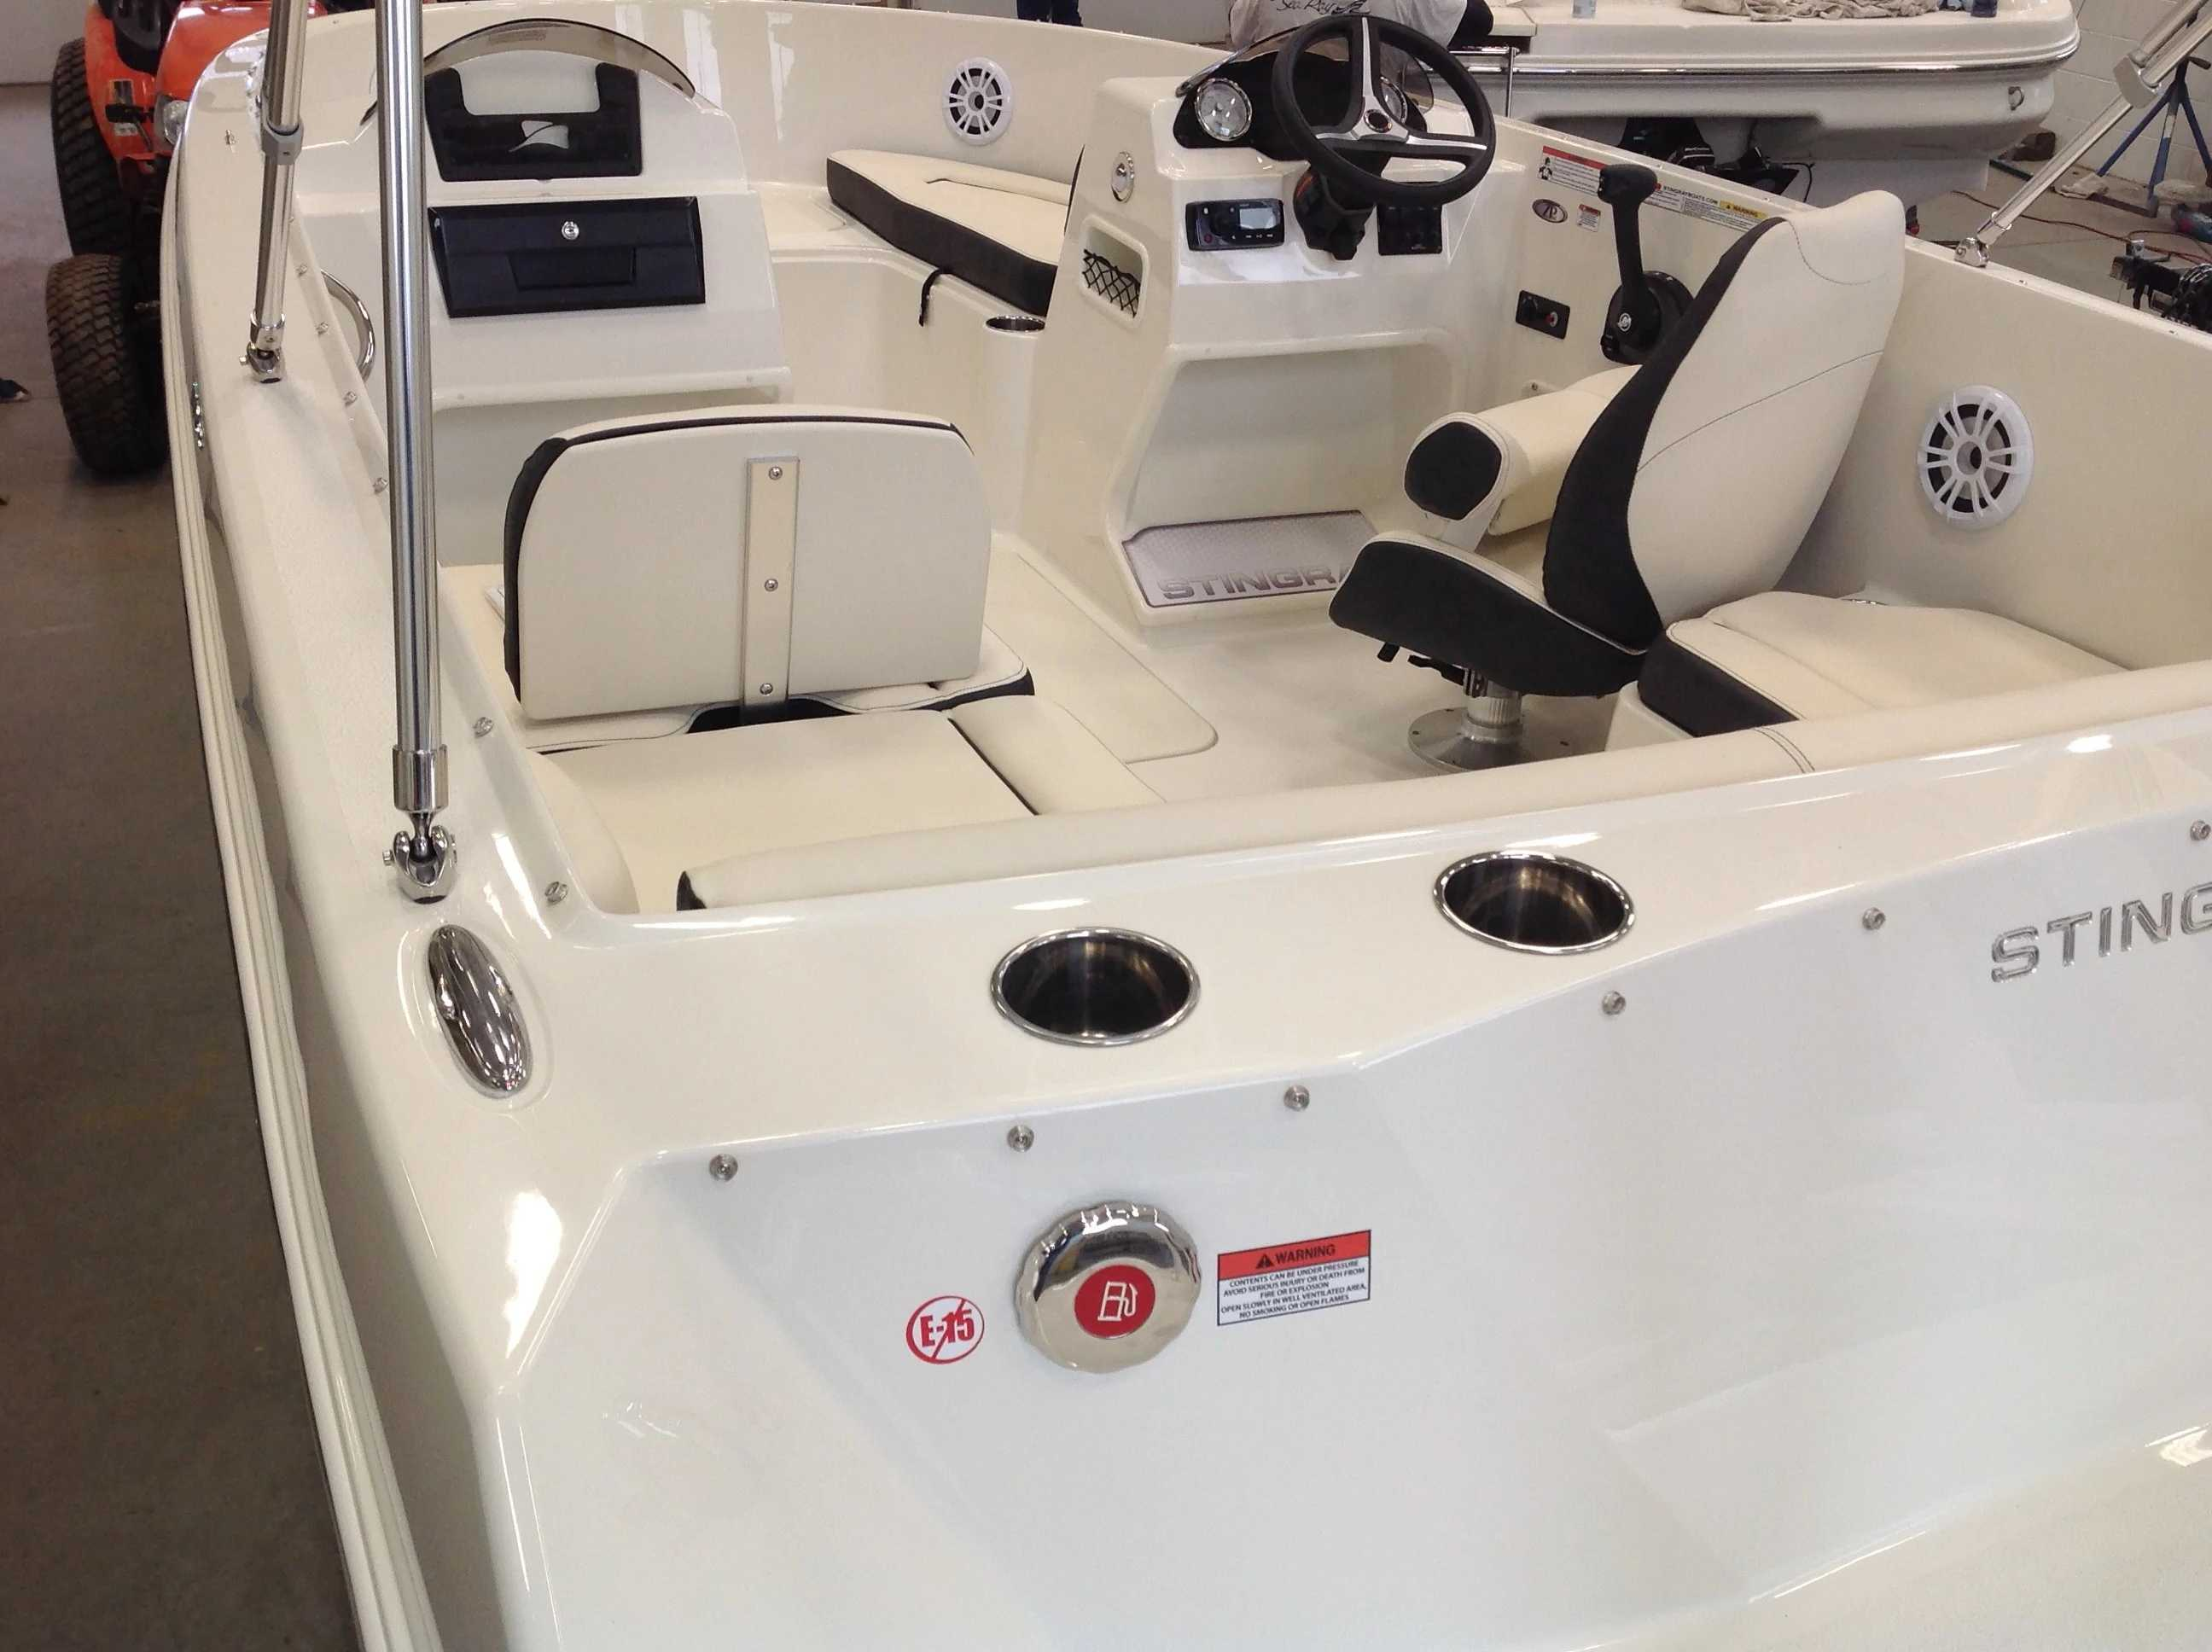 2022 Stingray boat for sale, model of the boat is 172sc & Image # 11 of 17